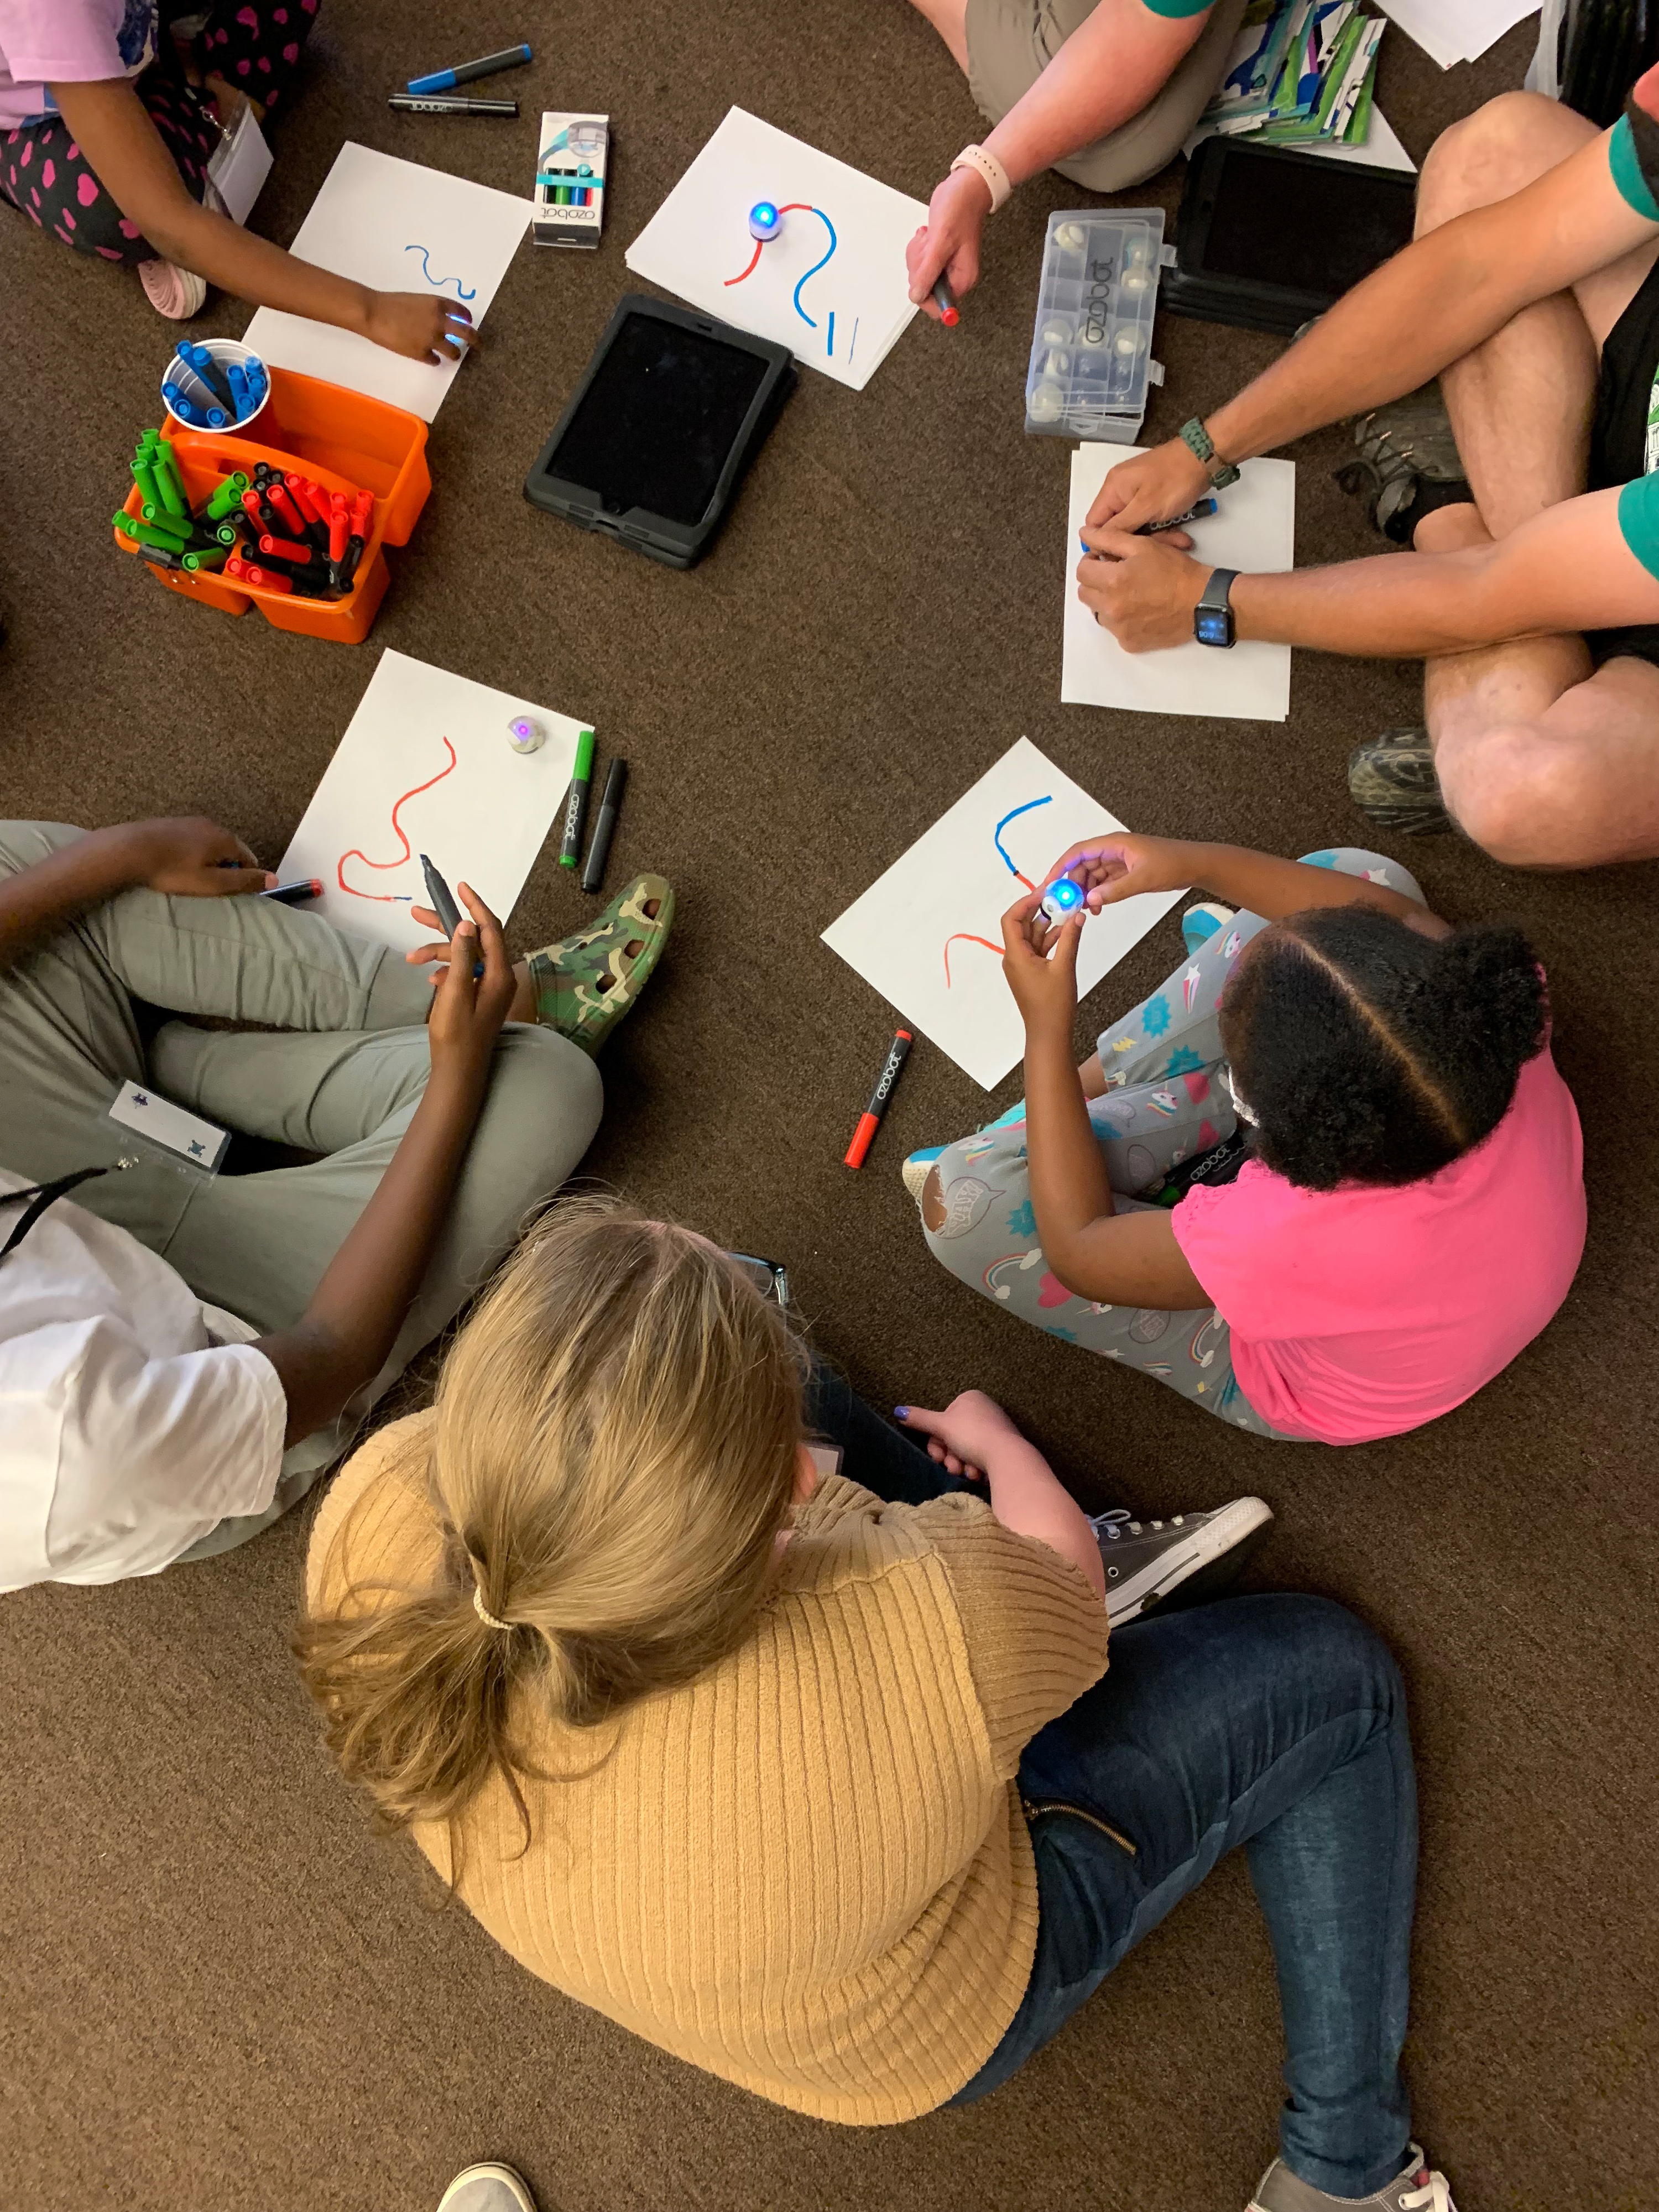 Overhead shot looking down at a tutor and three students sitting on the floor drawing.